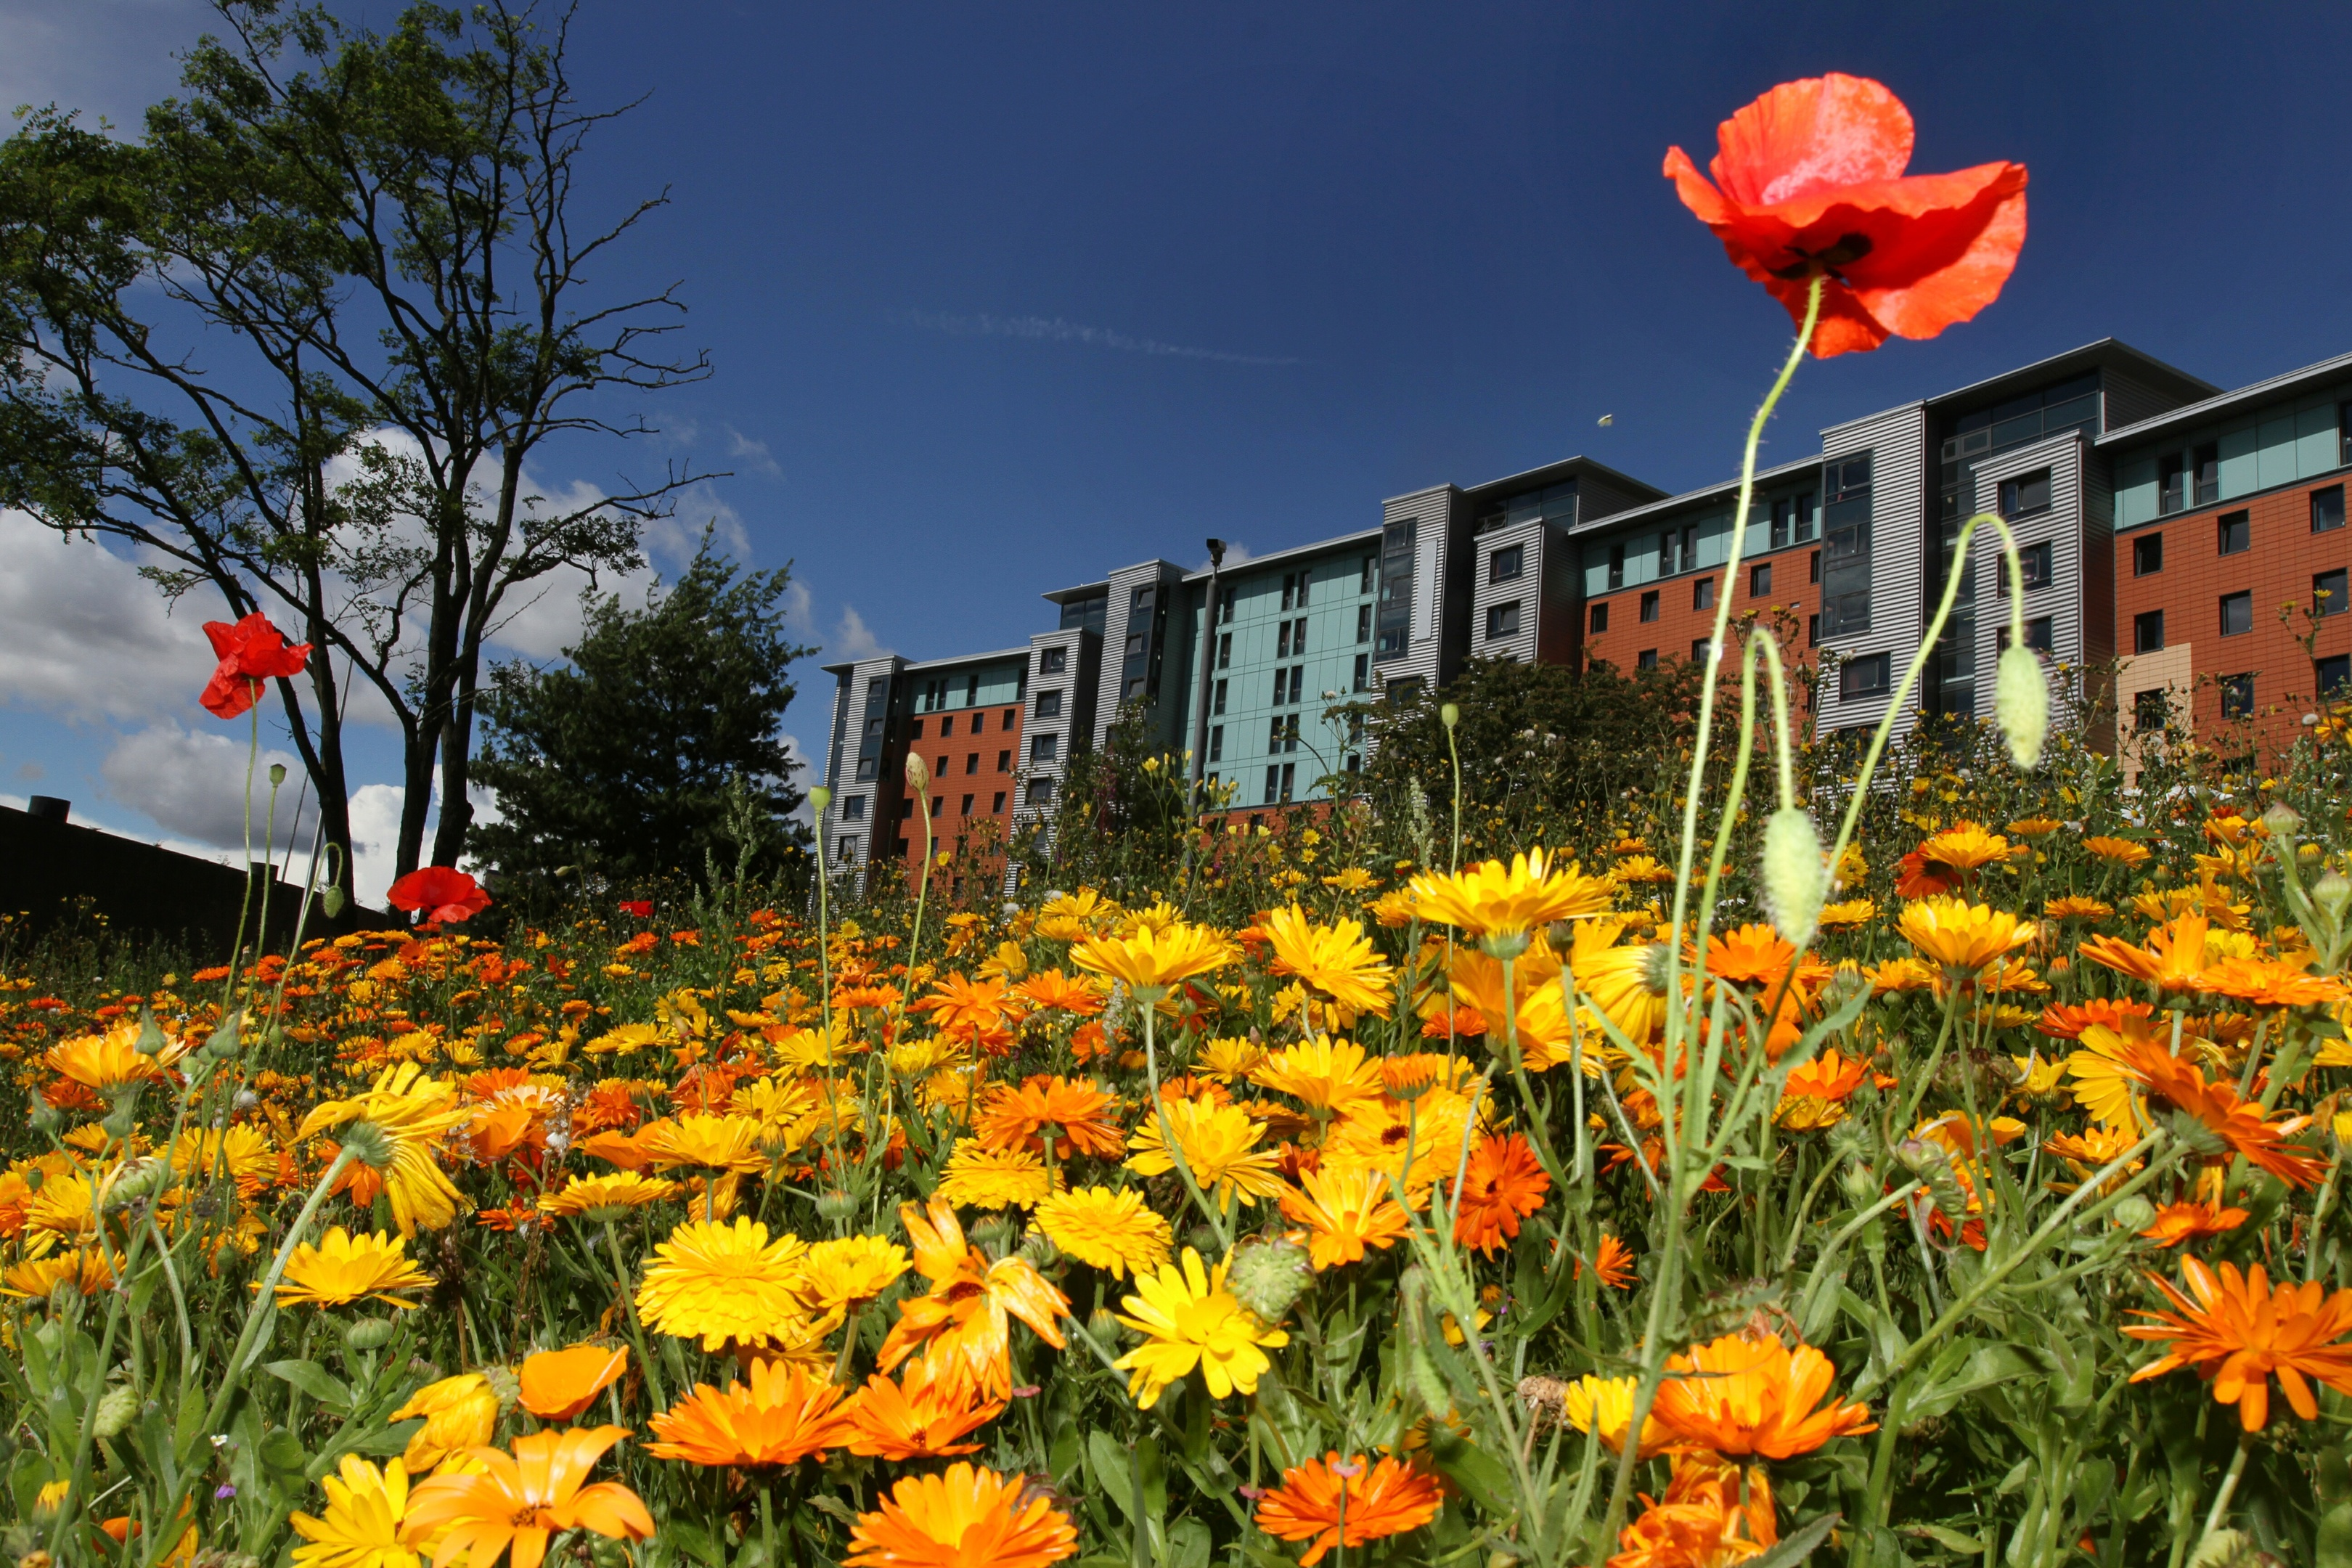 Flowers planted at the Dudhope roundabout.